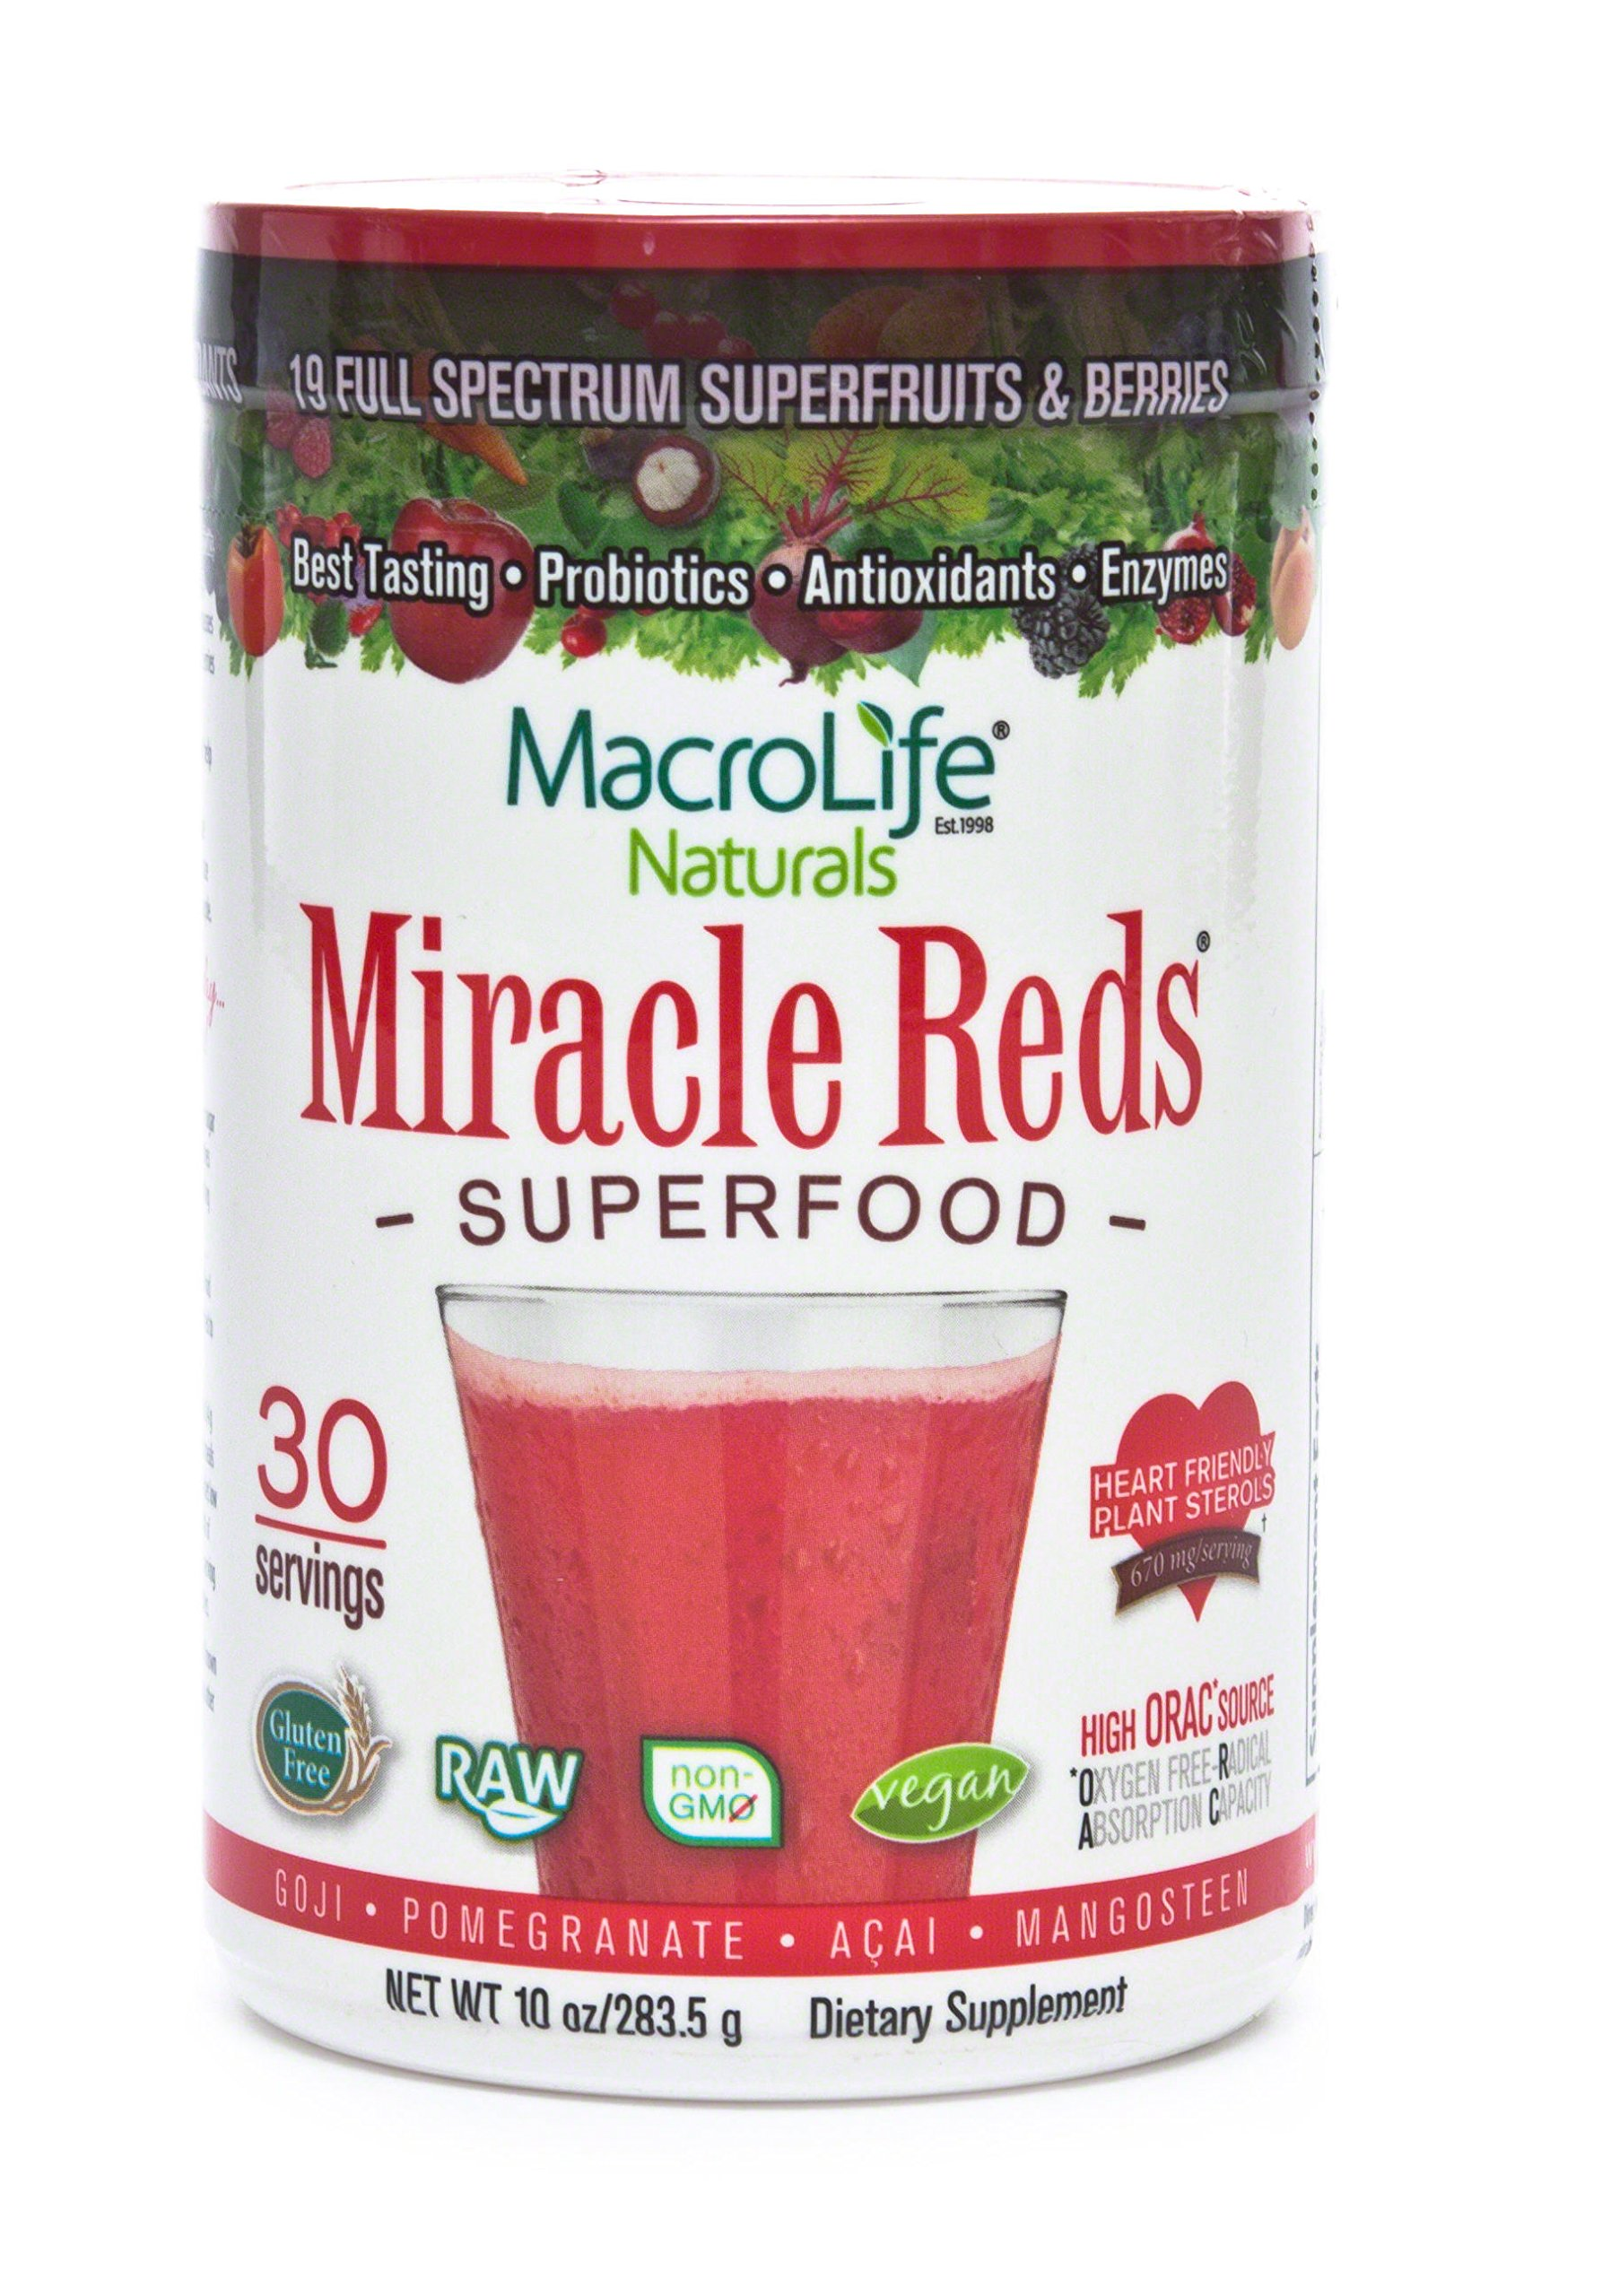 Miracle Reds Raw Organic Superfood| Powerful Gluten Free, Non GMO Fruit & Veggie Drink Powder| Contains List of Vital Reds including Digestive Enzymes, Tumeric, Probiotic, and Goji Berries by MacroLife Naturals